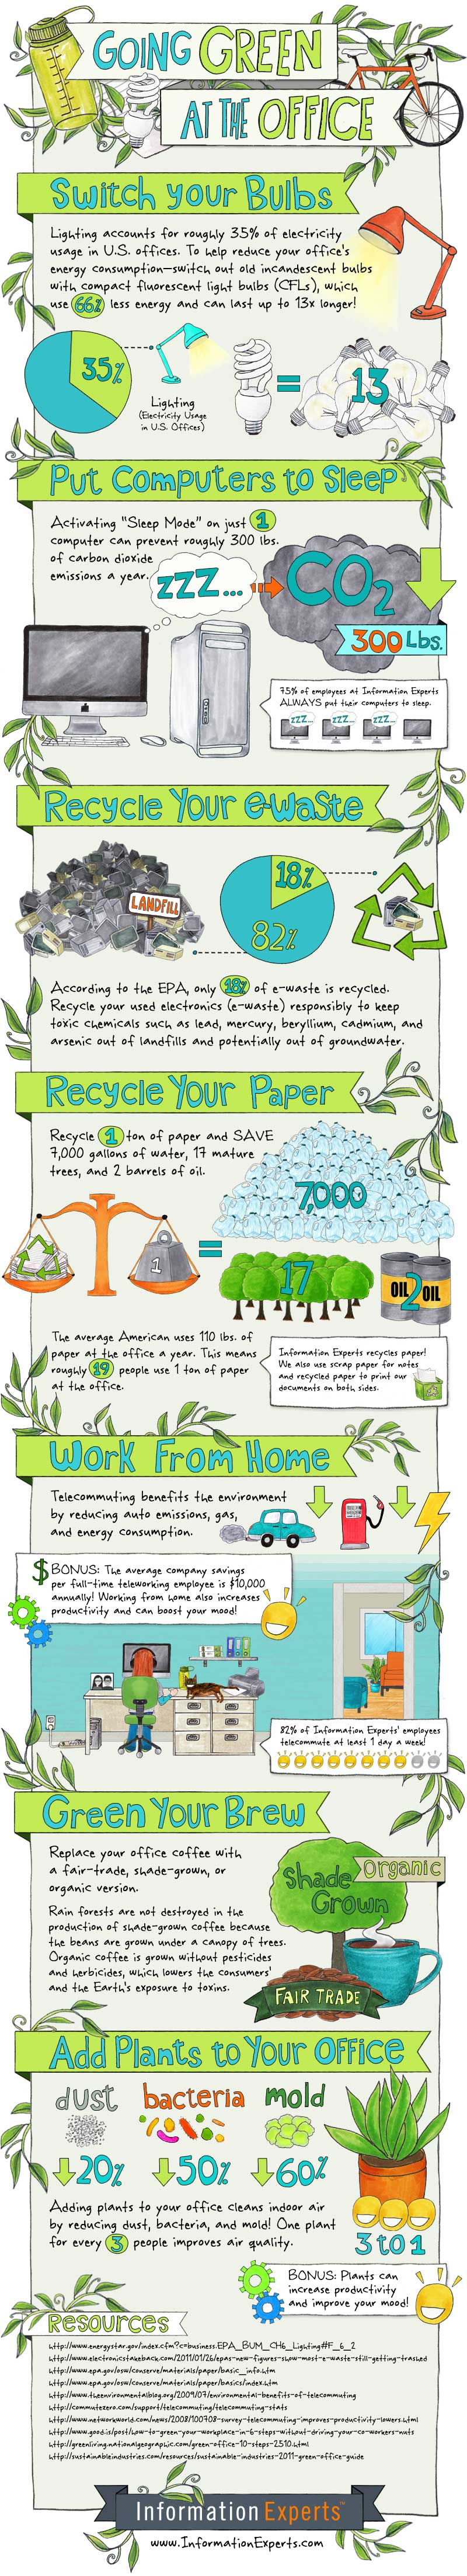 infographic about going green at the office